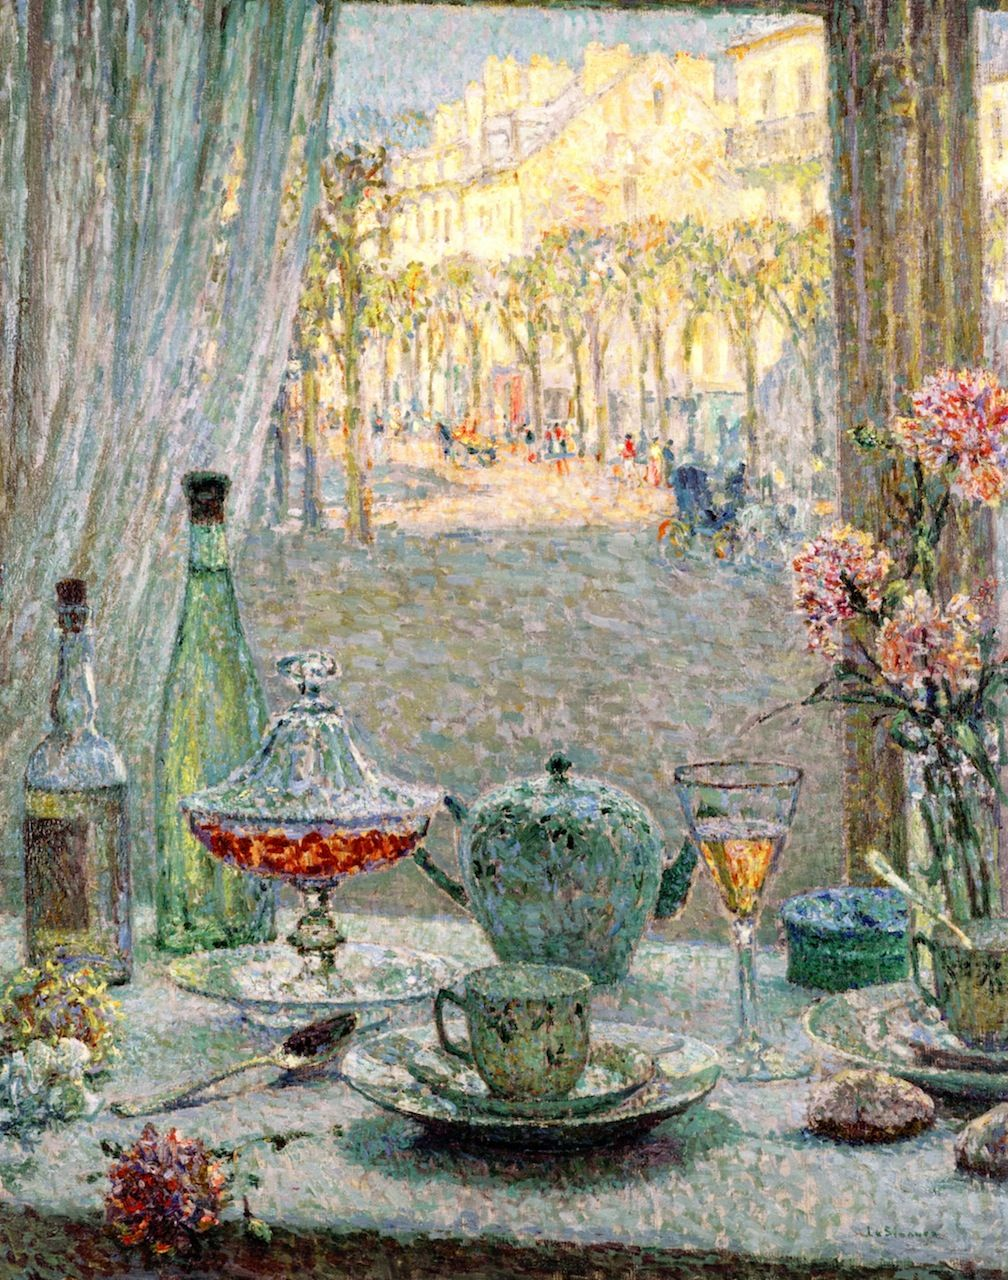 'A Table by the Window', Reflections (Henri Le Sidaner - 1900)